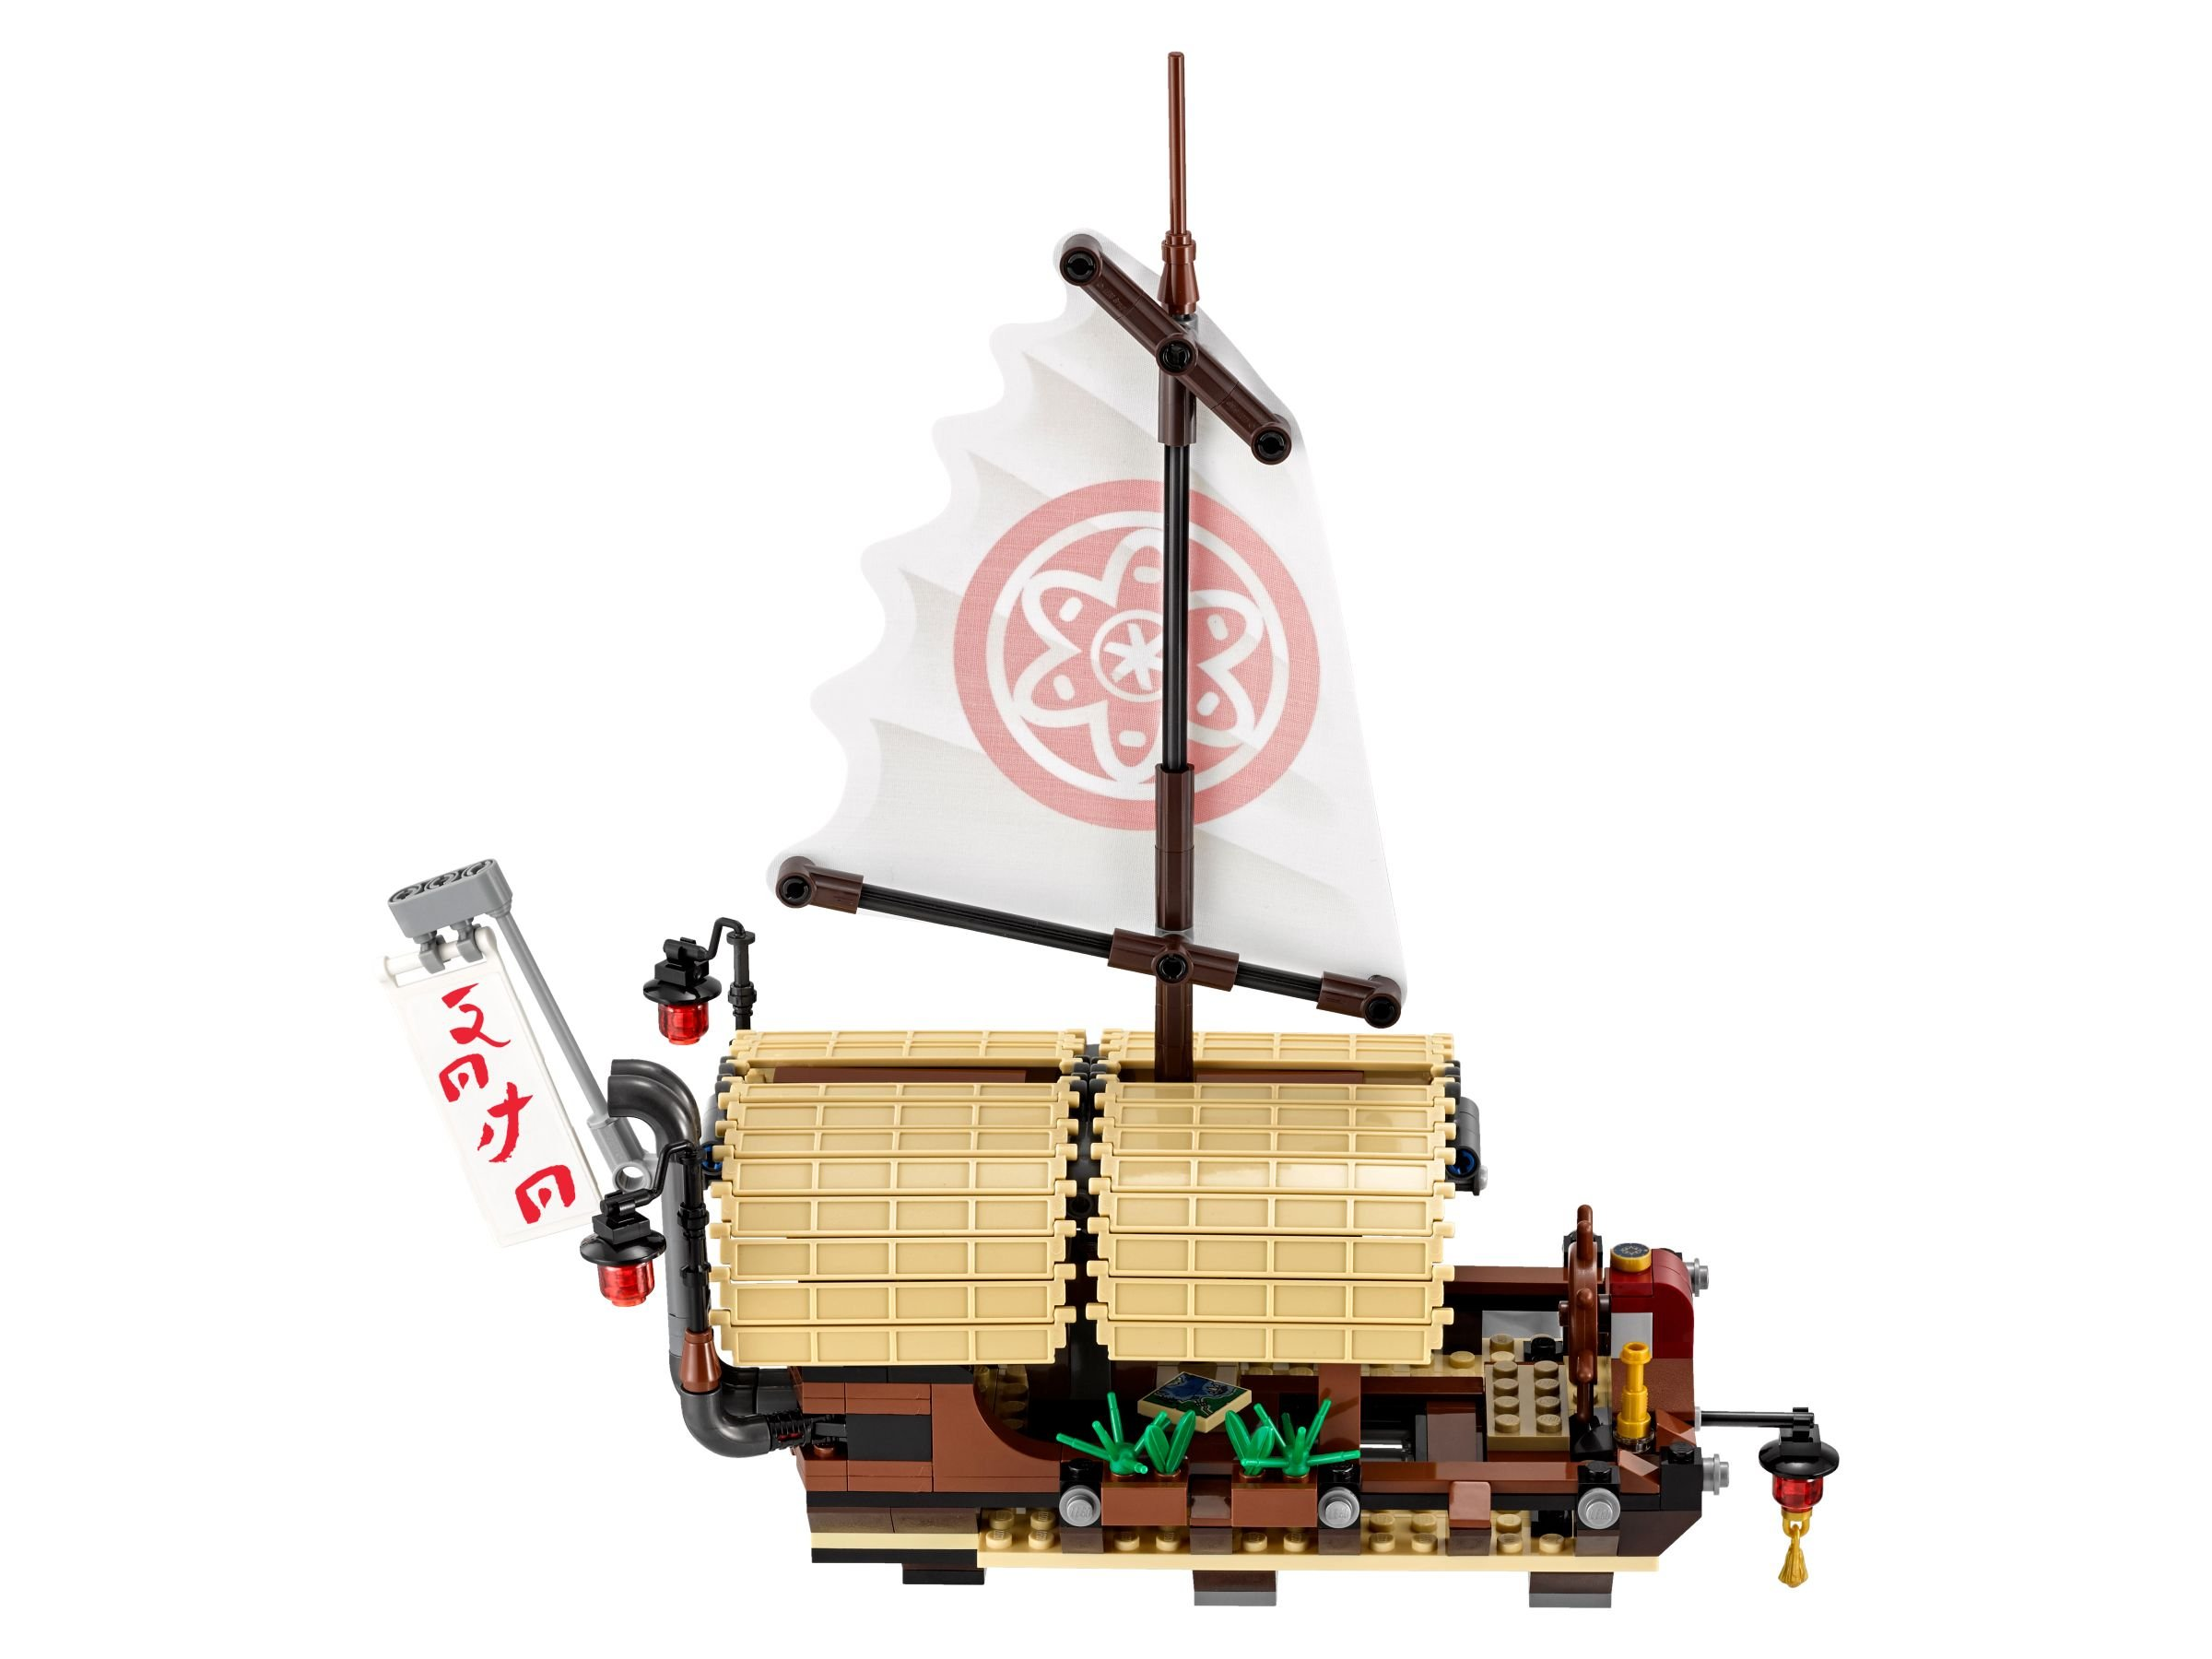 LEGO The LEGO Ninjago Movie 70618 Ninja-Flugsegler LEGO_70618_alt4.jpg